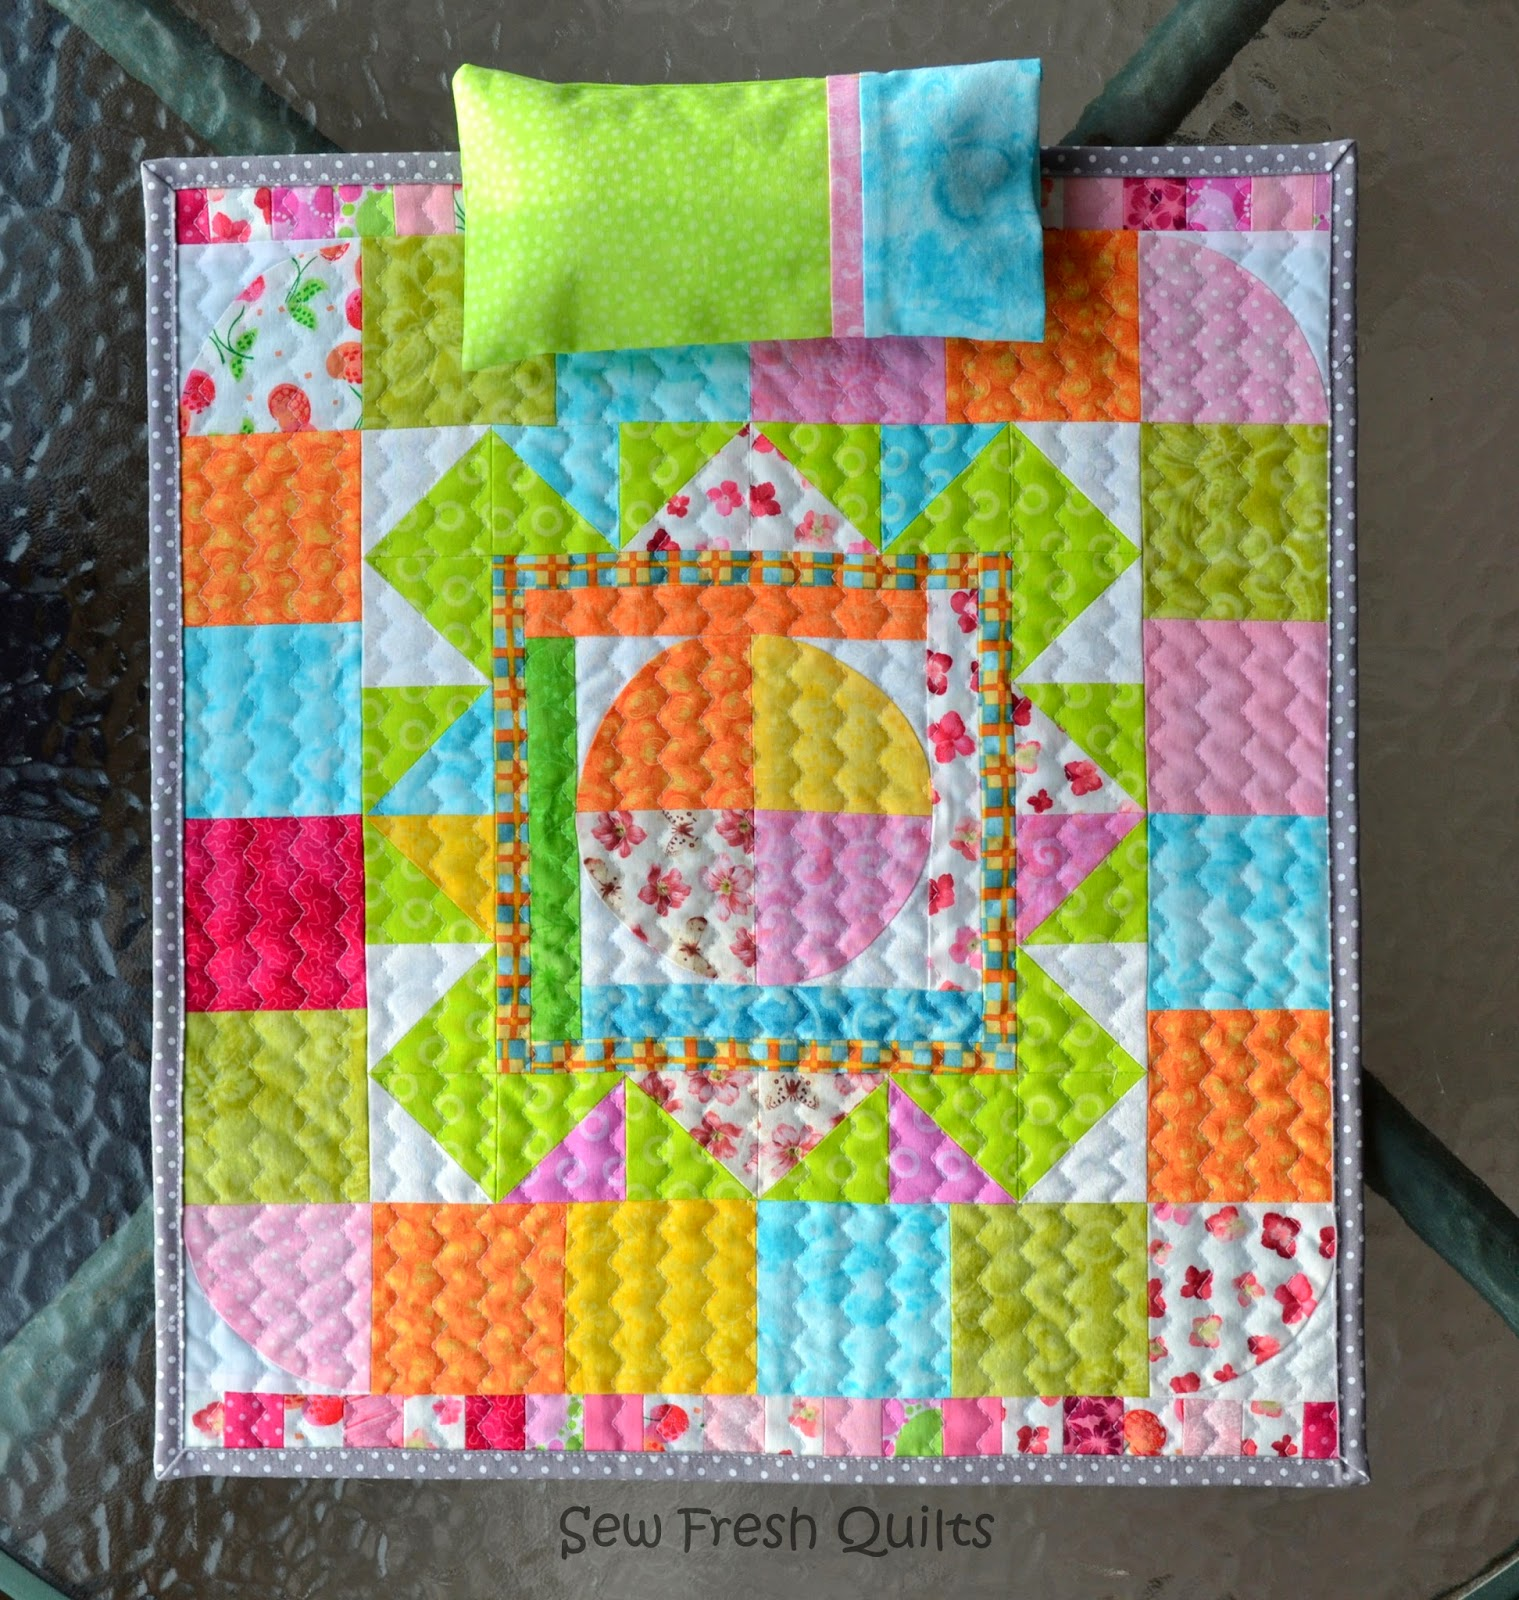 & Sew Fresh Quilts: Pillow Case Tutorial with French Seams pillowsntoast.com